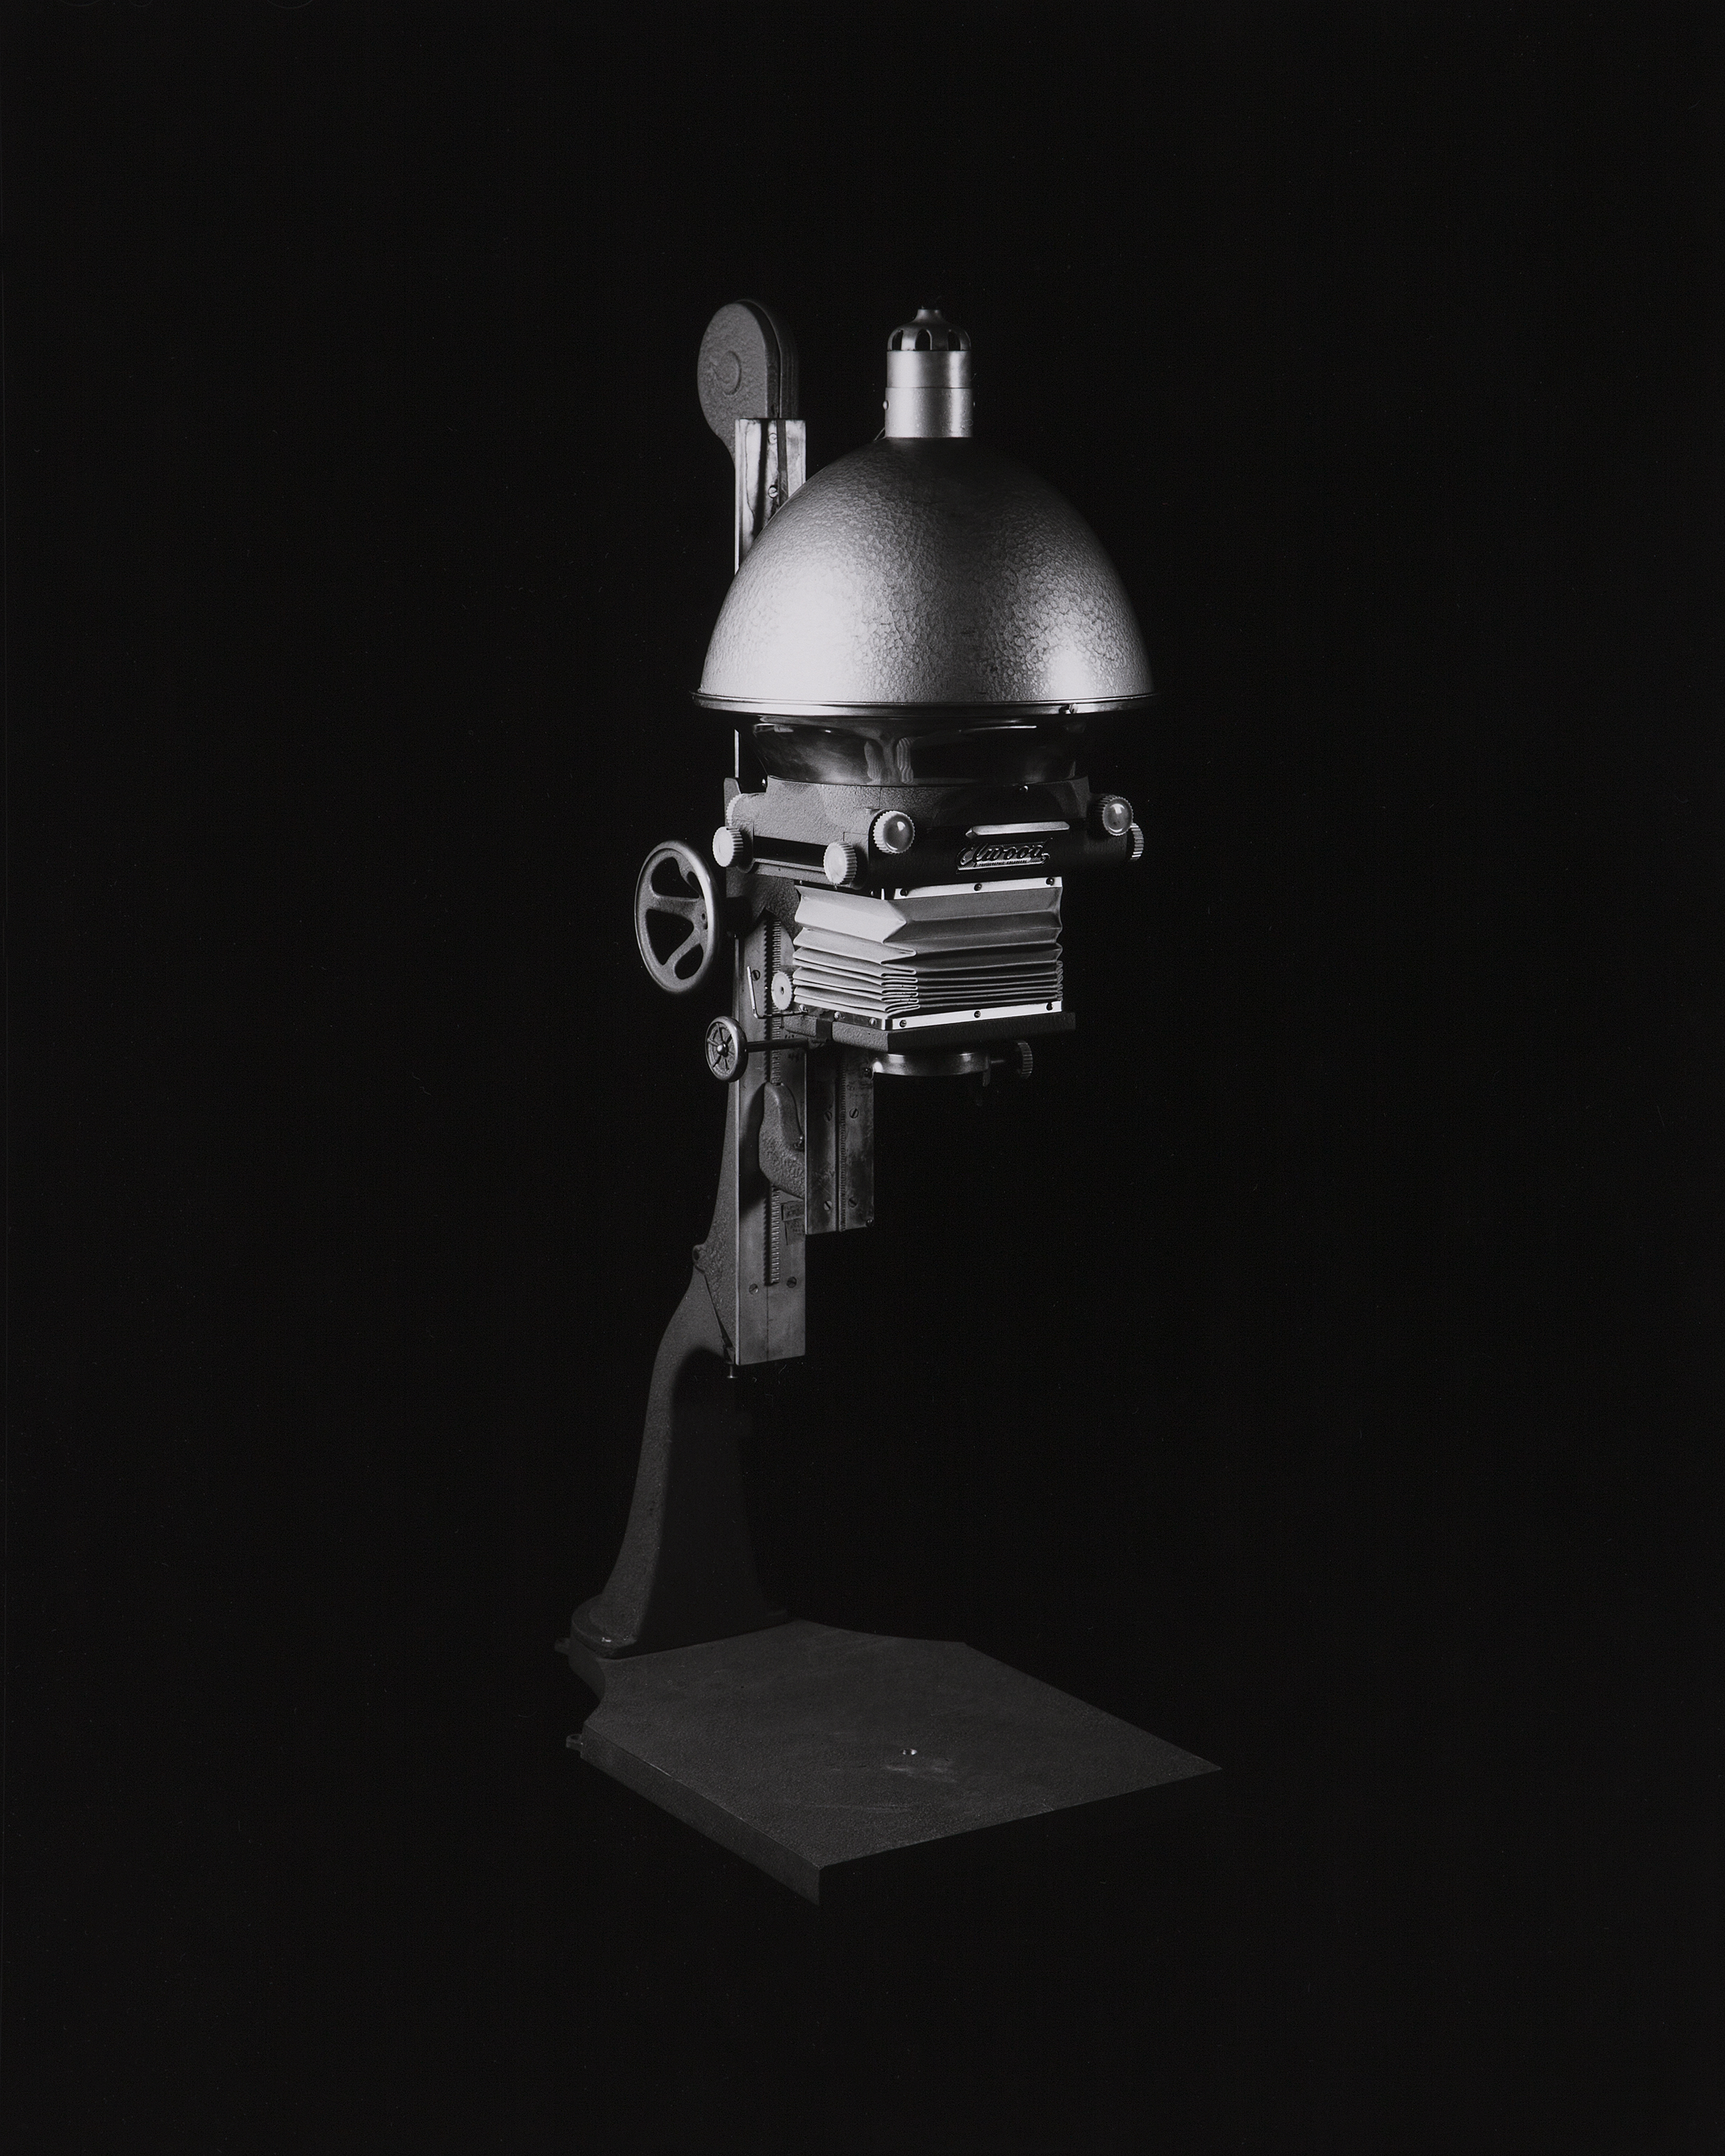 CJL_Enlarger.jpg